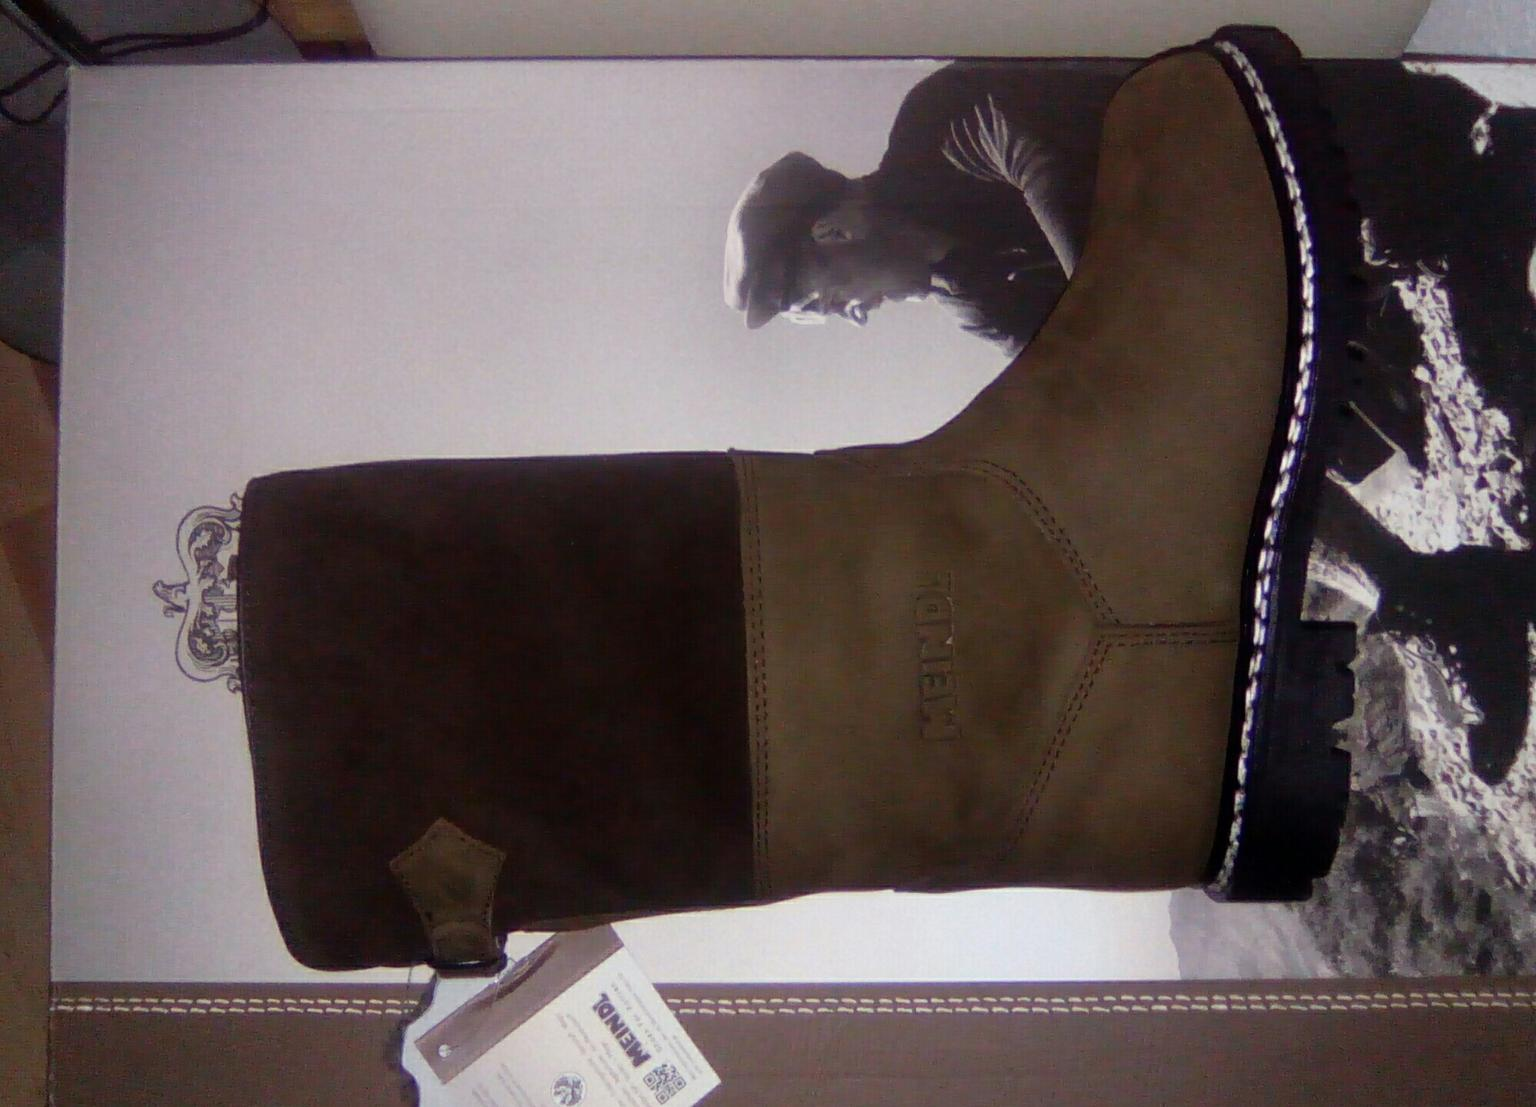 Meindl Schuhe Gr. 30 in 64297 Darmstadt for €4.00 for sale